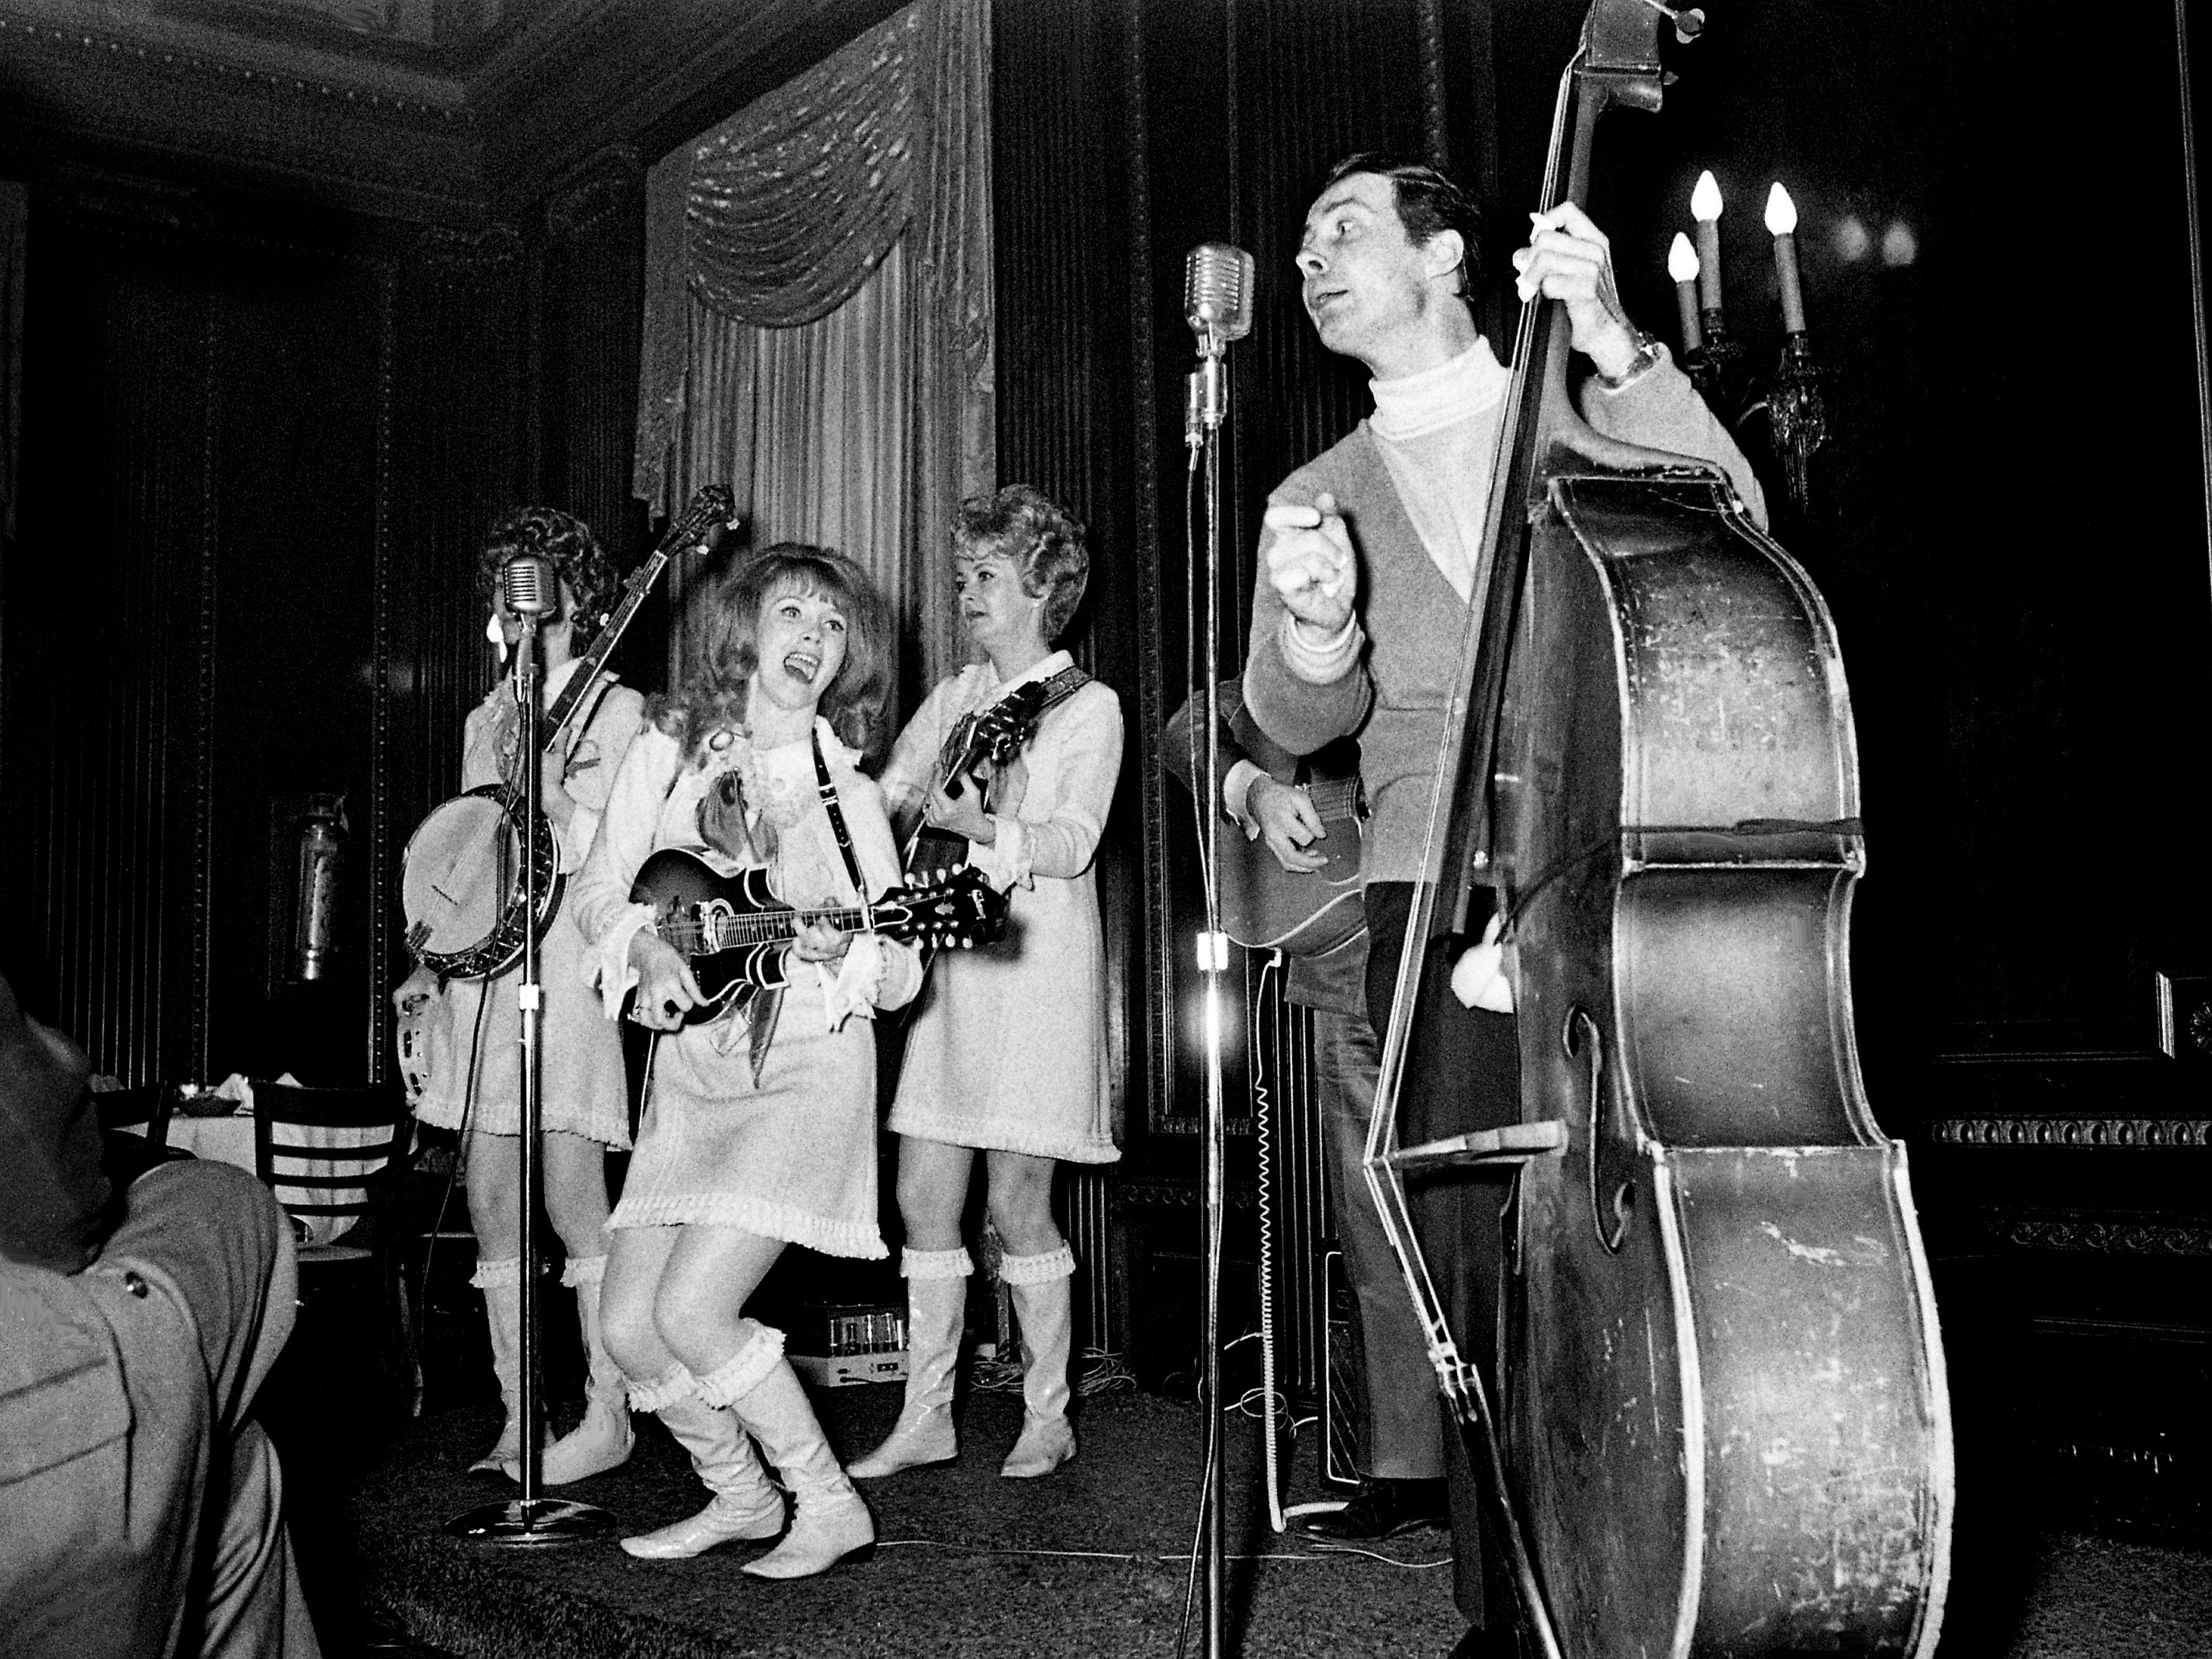 The Stonemans, Roni, left, Donna, Patsy, Van and Jimmy, perform for Tennessee Press Association members during a luncheon given by The Tennessean at the Hermitage Hotel on Jan. 17, 1969.